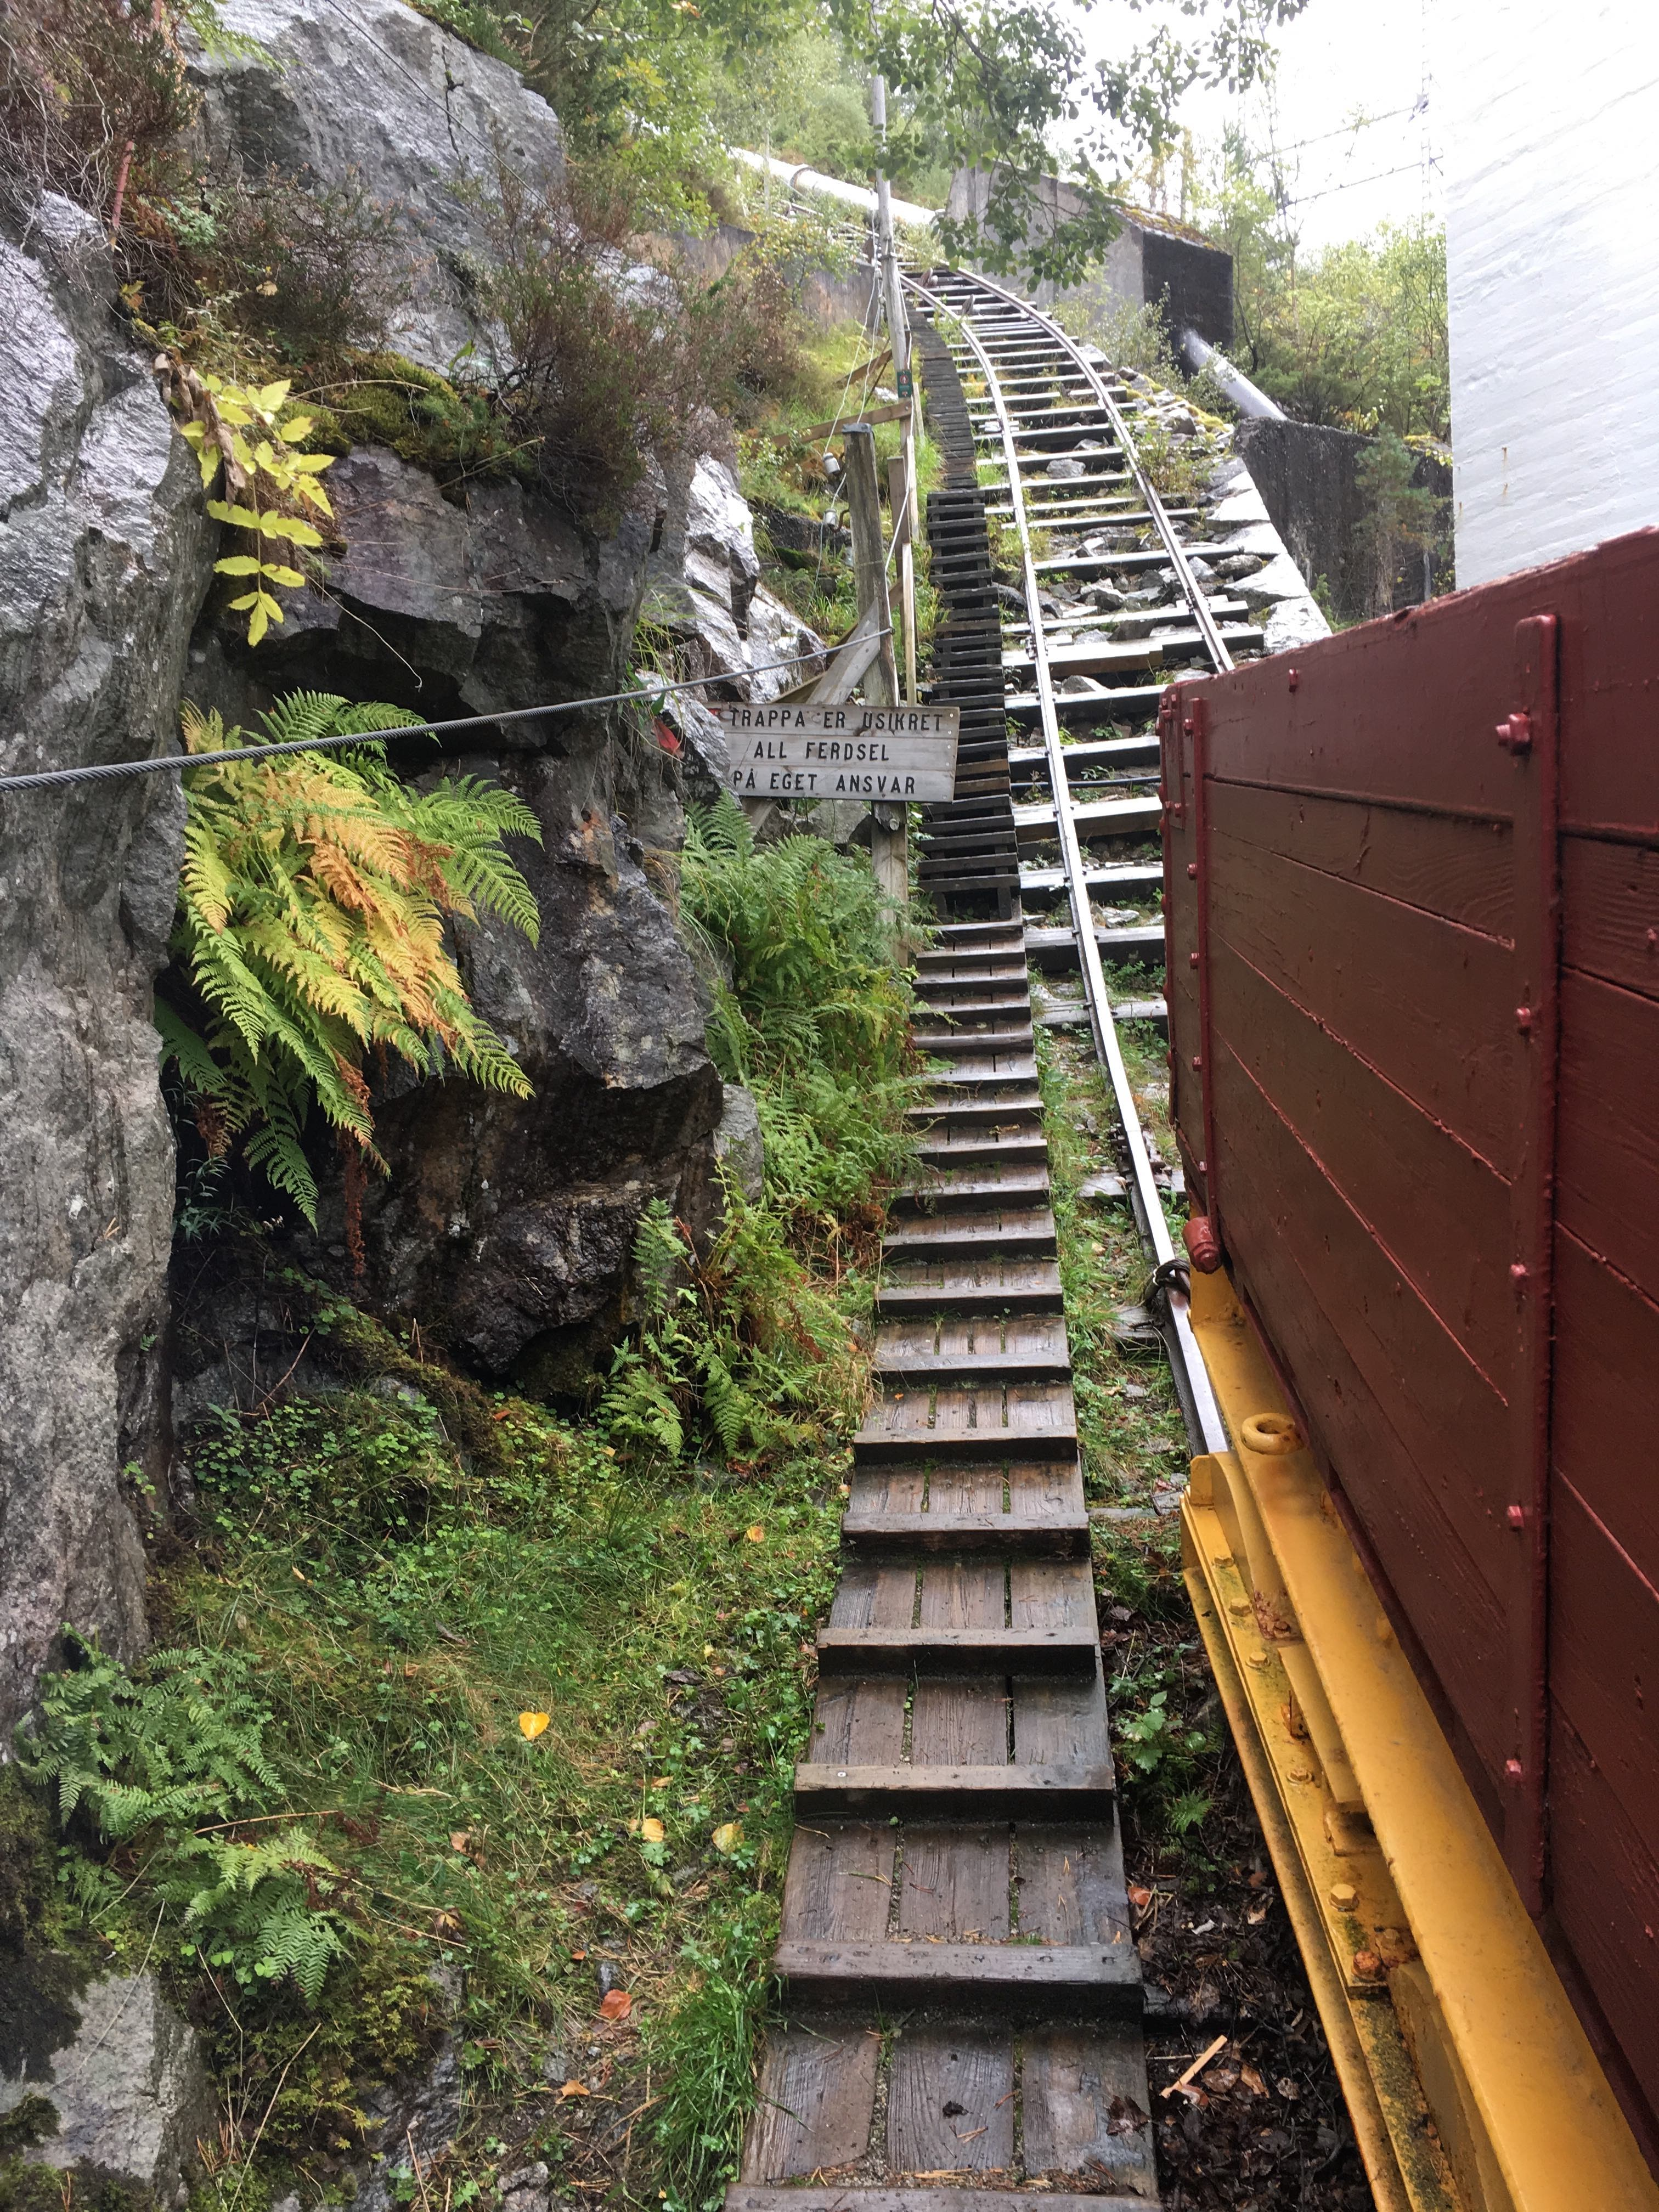 The Flørli stairs in Lysefjorden, Norway, feature 4,444 wooden steps. John Kindervag took this photograph on a trip near where his grandfather spent his childhood, and uses the steps as an image to illustrate his concept of the Zero Trust learning curve.